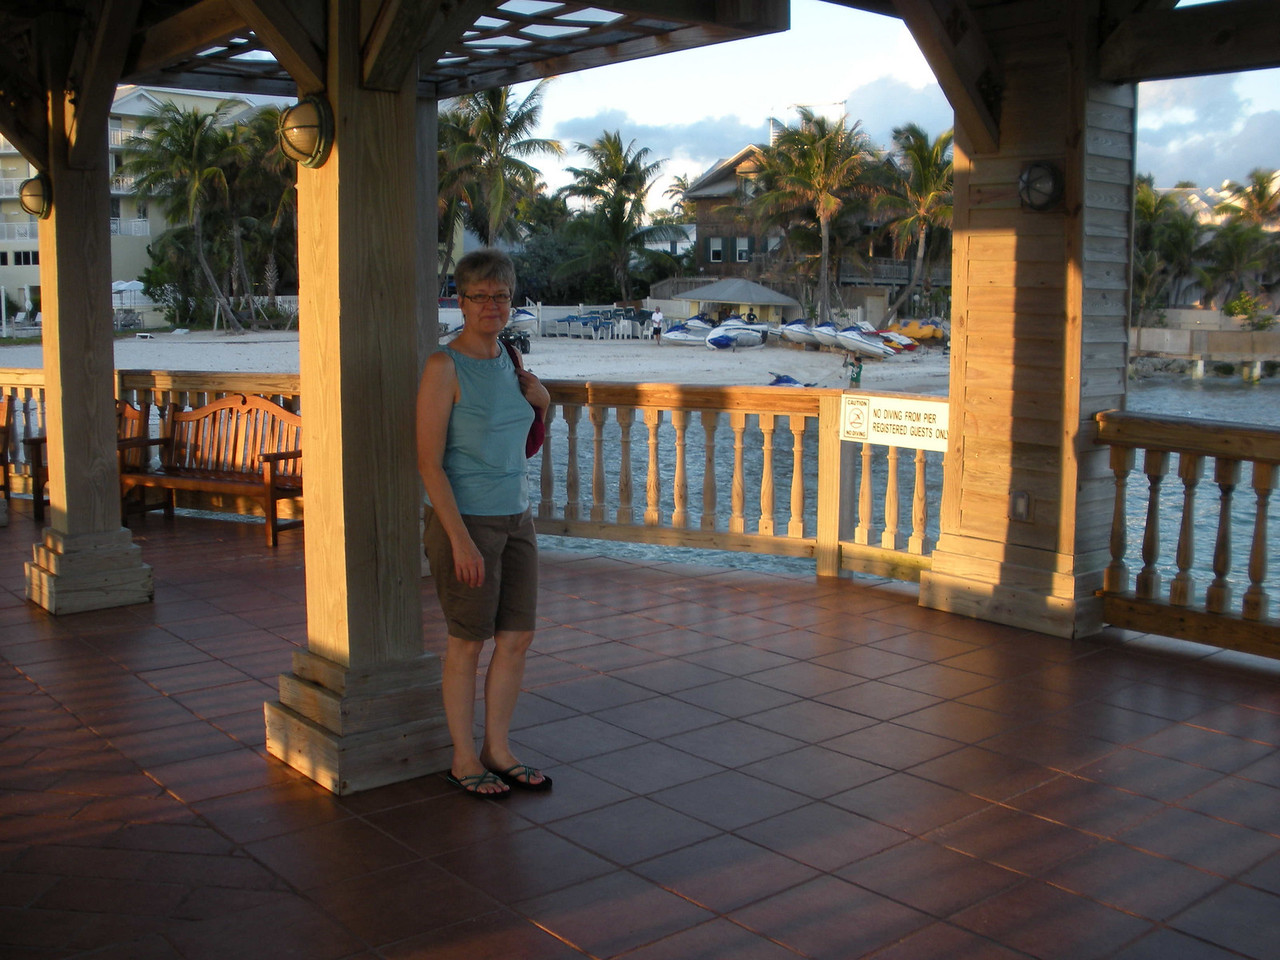 Louise on the pier outside our hotel, The Reach. It's grasp exceeded its reach, I'm sorry to say. Not recommended.